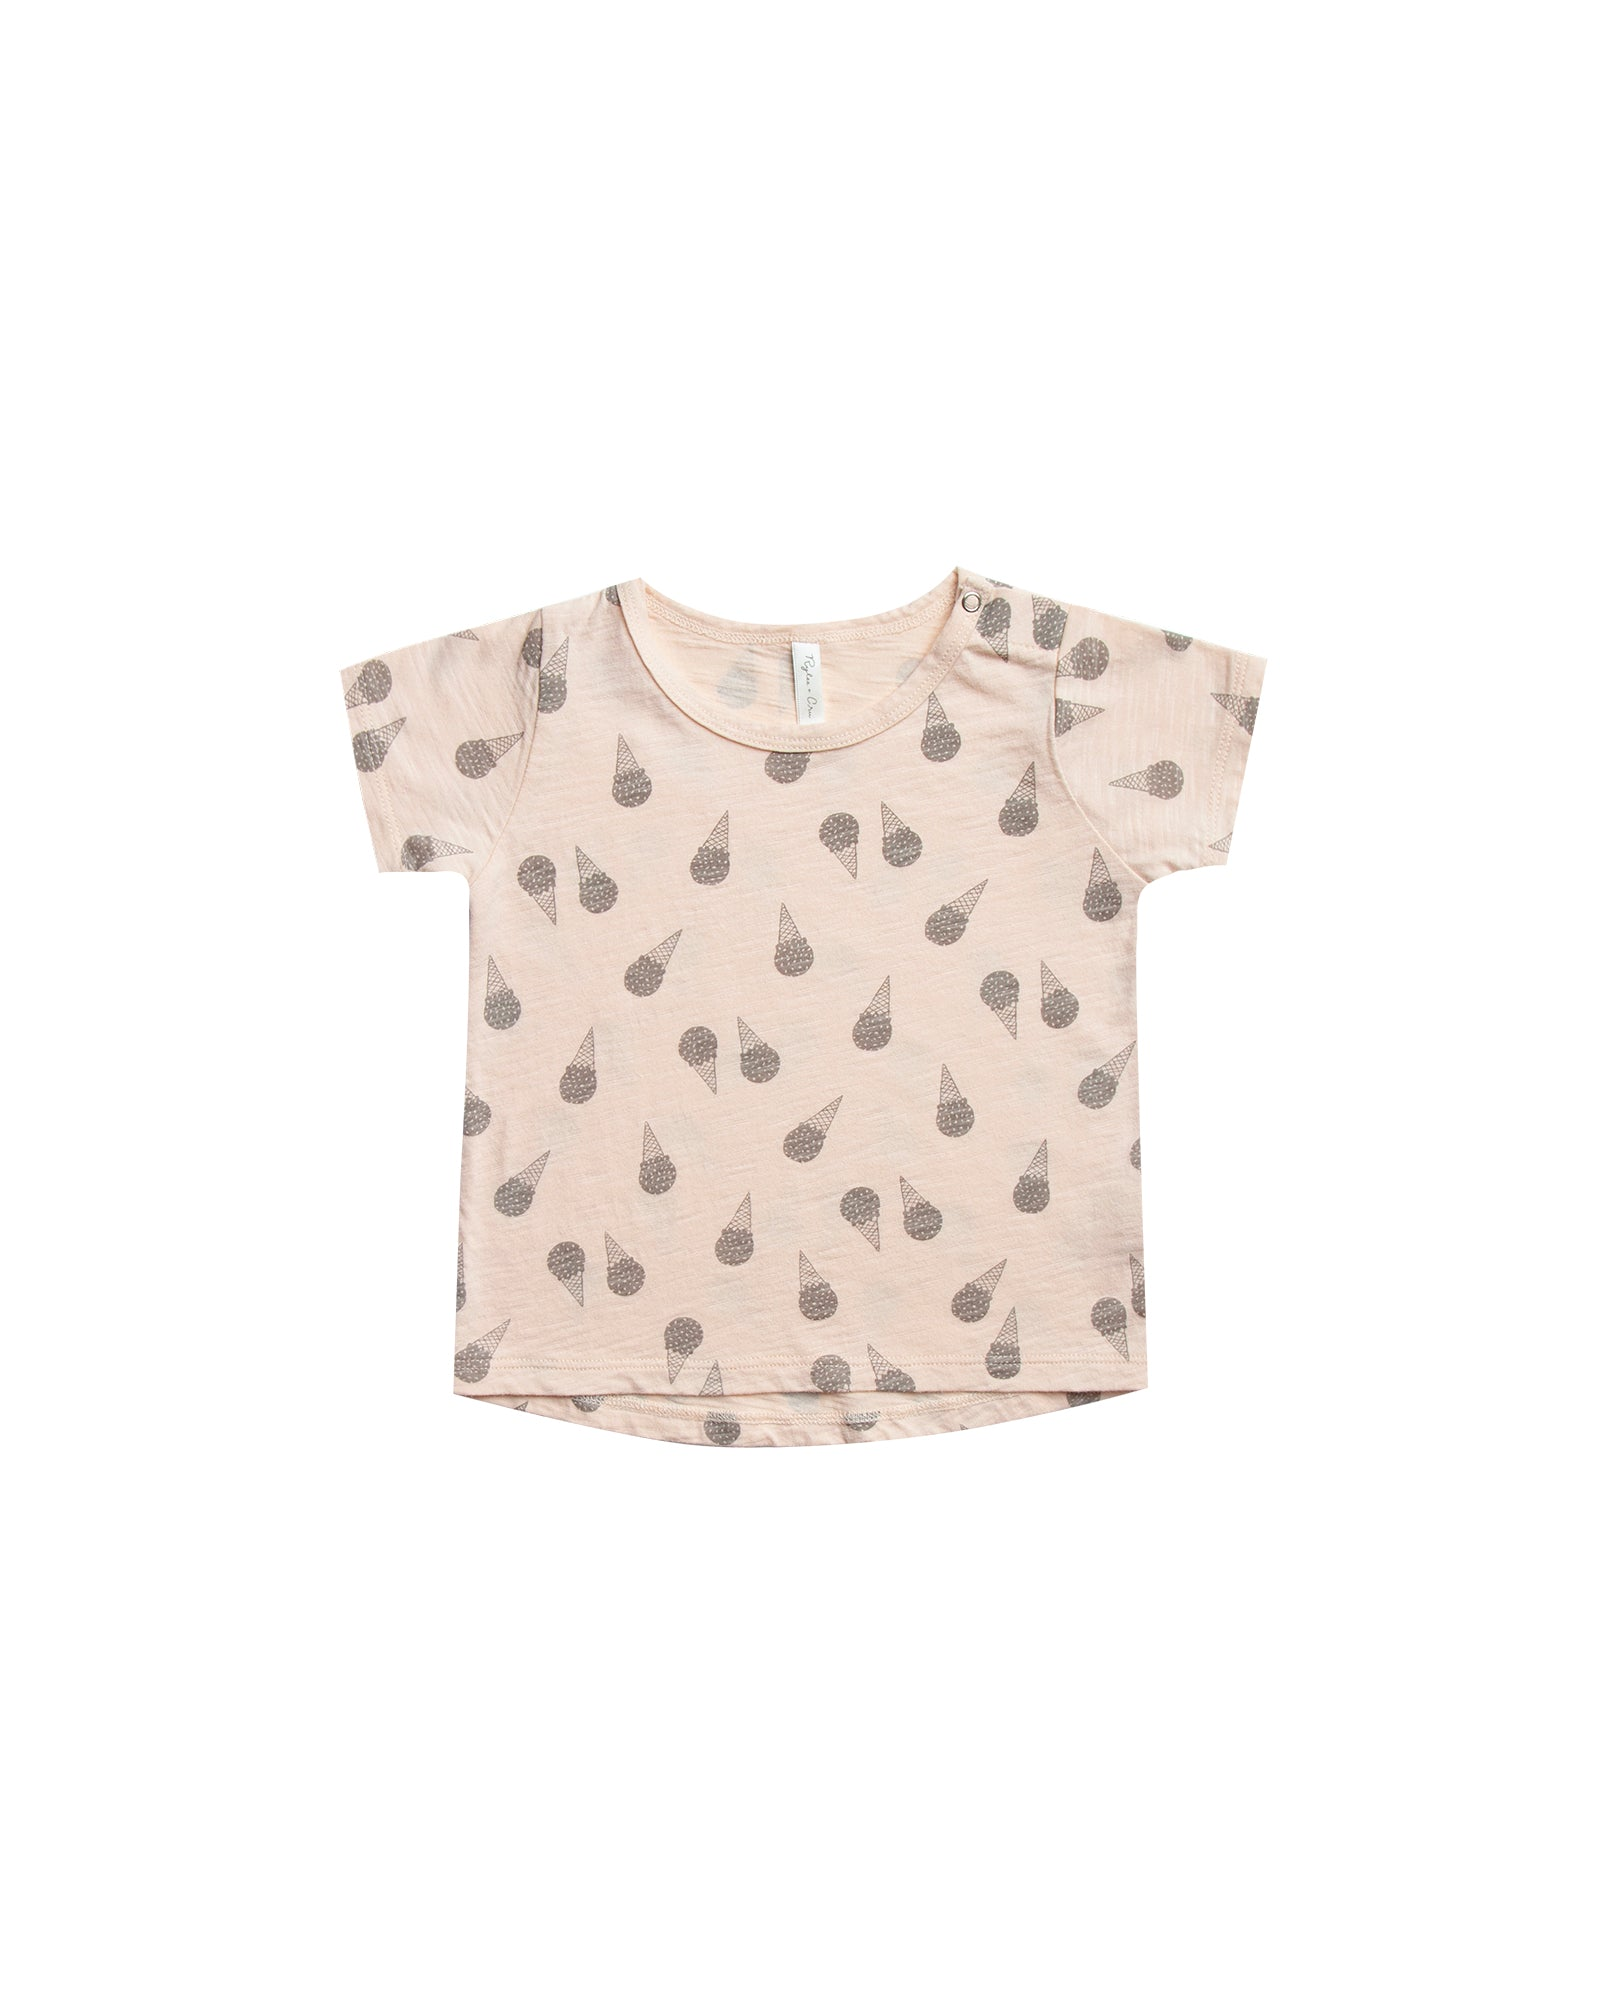 RYLEE + CRU ICE CREAM BASIC TEE / SOFT PEACH